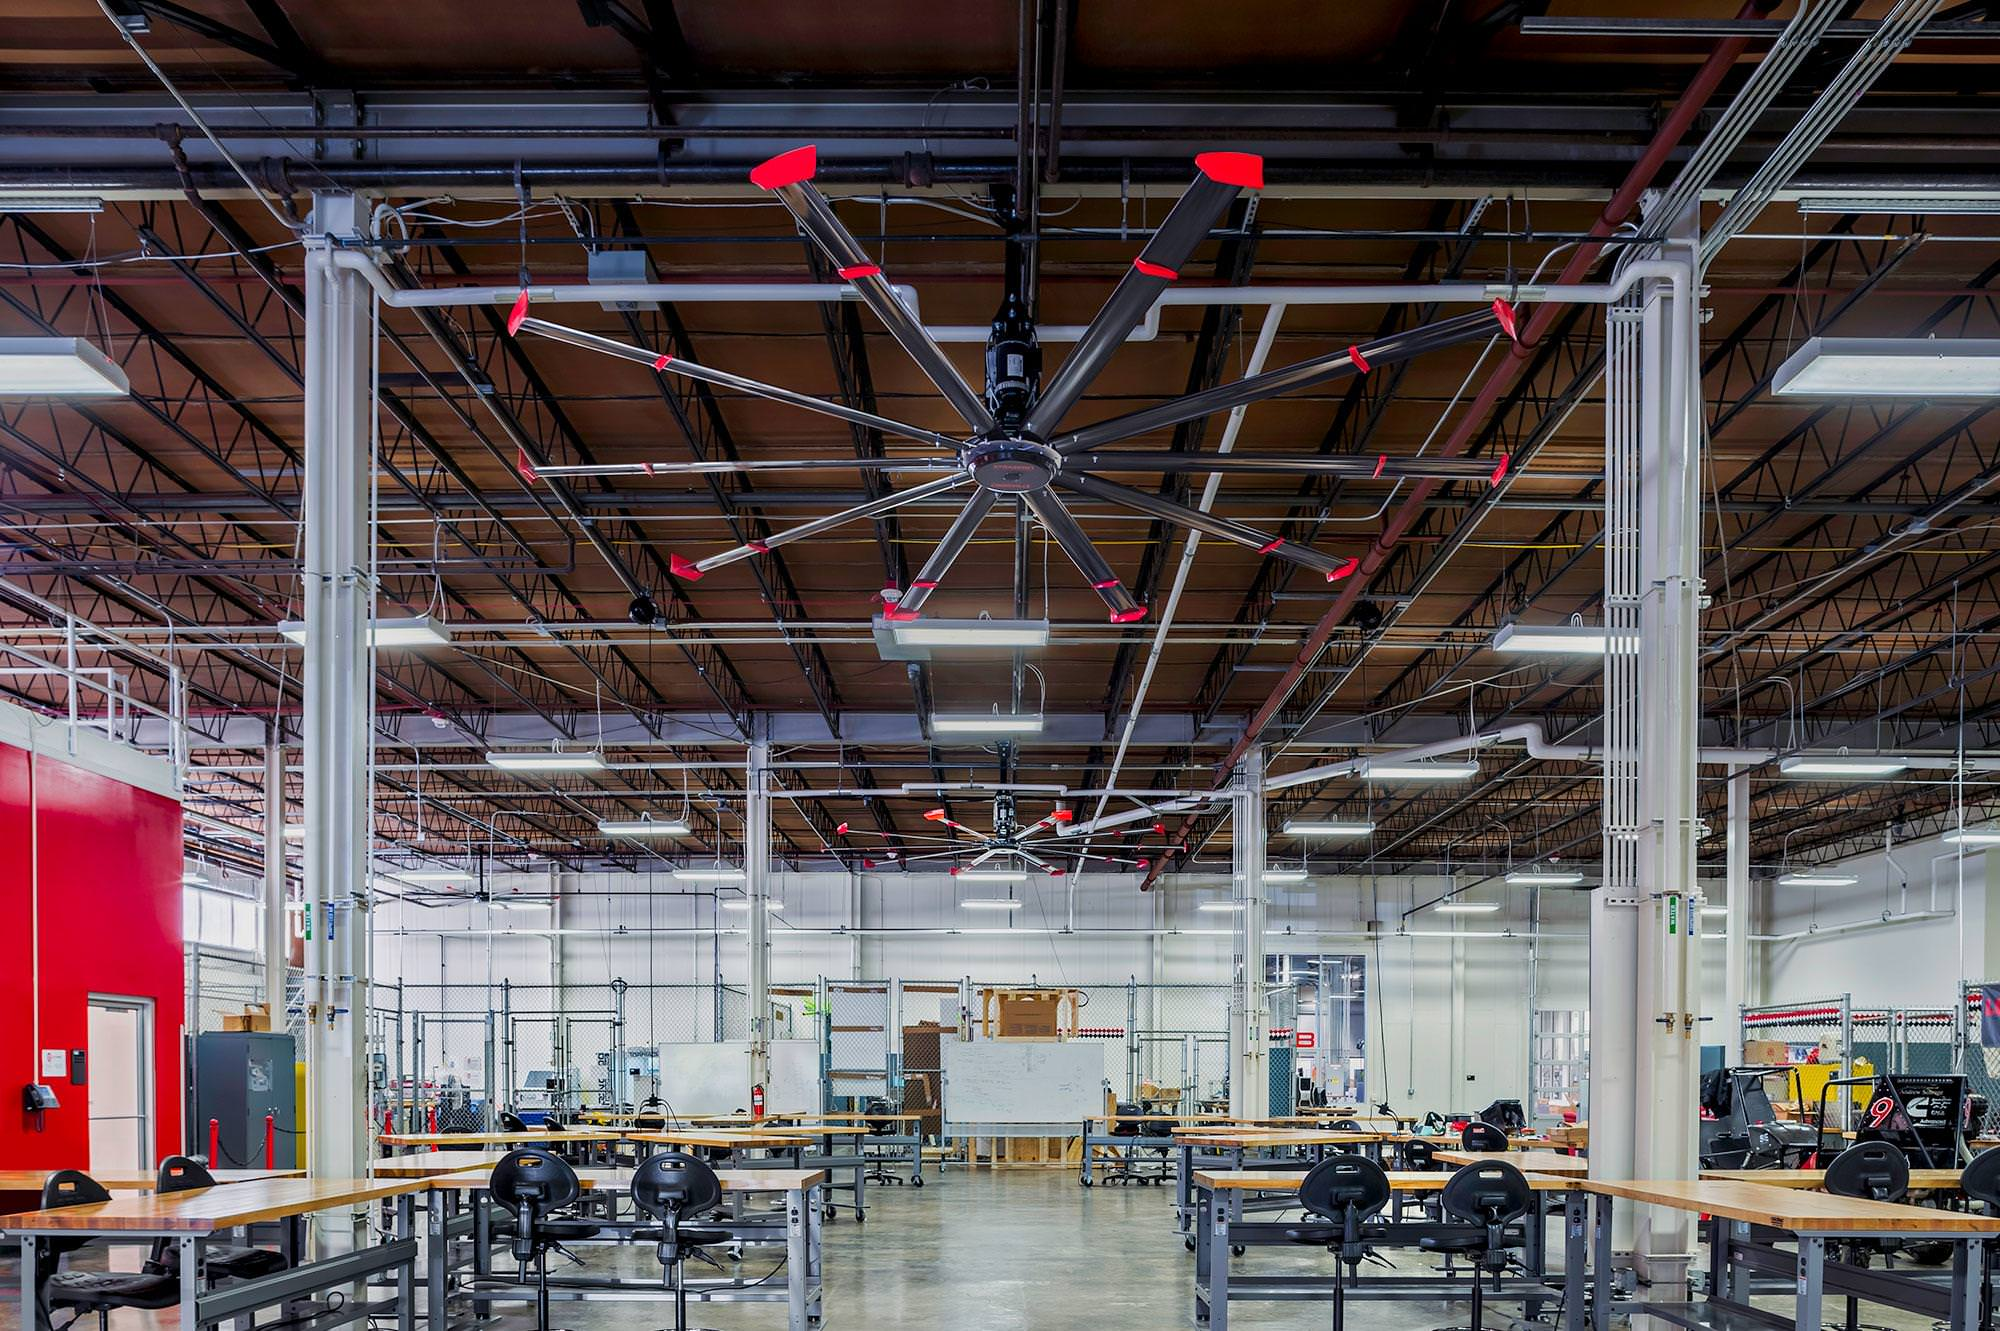 Powerfoil X3 0 is an HVLS mercial Ceilin Fans with LED